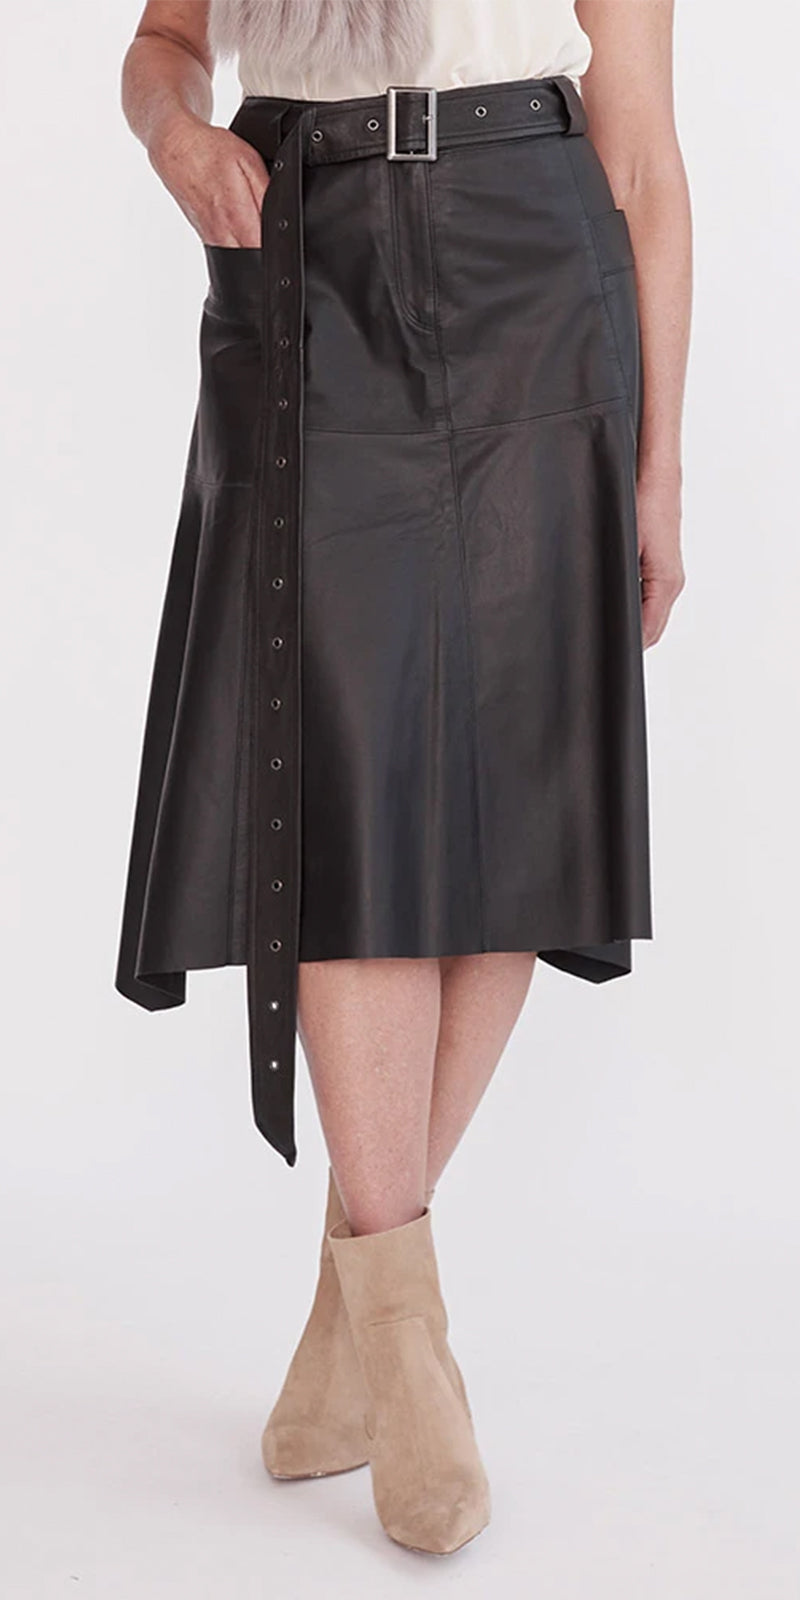 WEST 14TH HUDSON HIGH-RISE SKIRT IN BLACK LEATHER